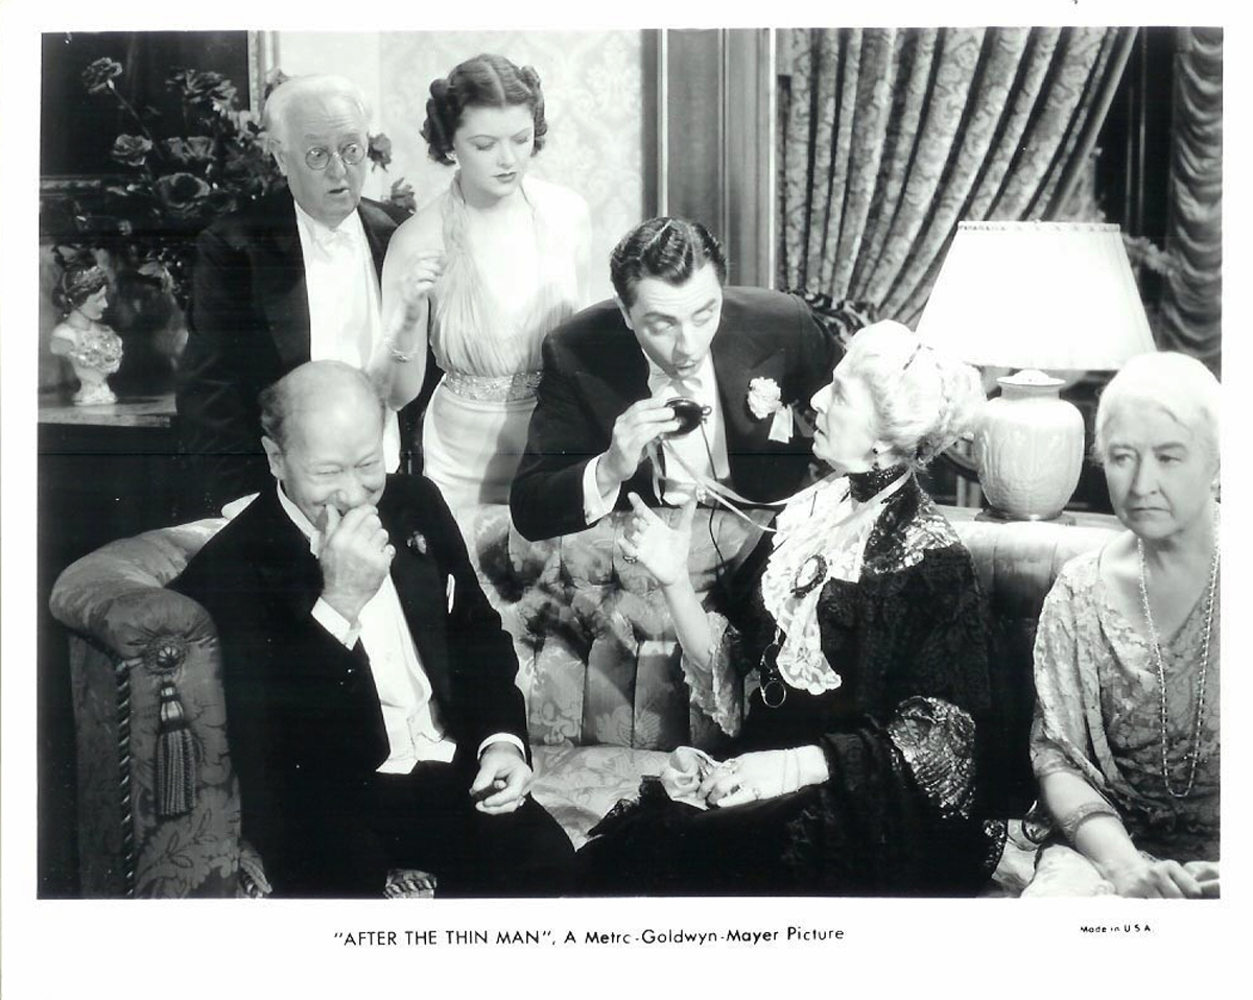 after the thin man 1936 scene still photo 959-x